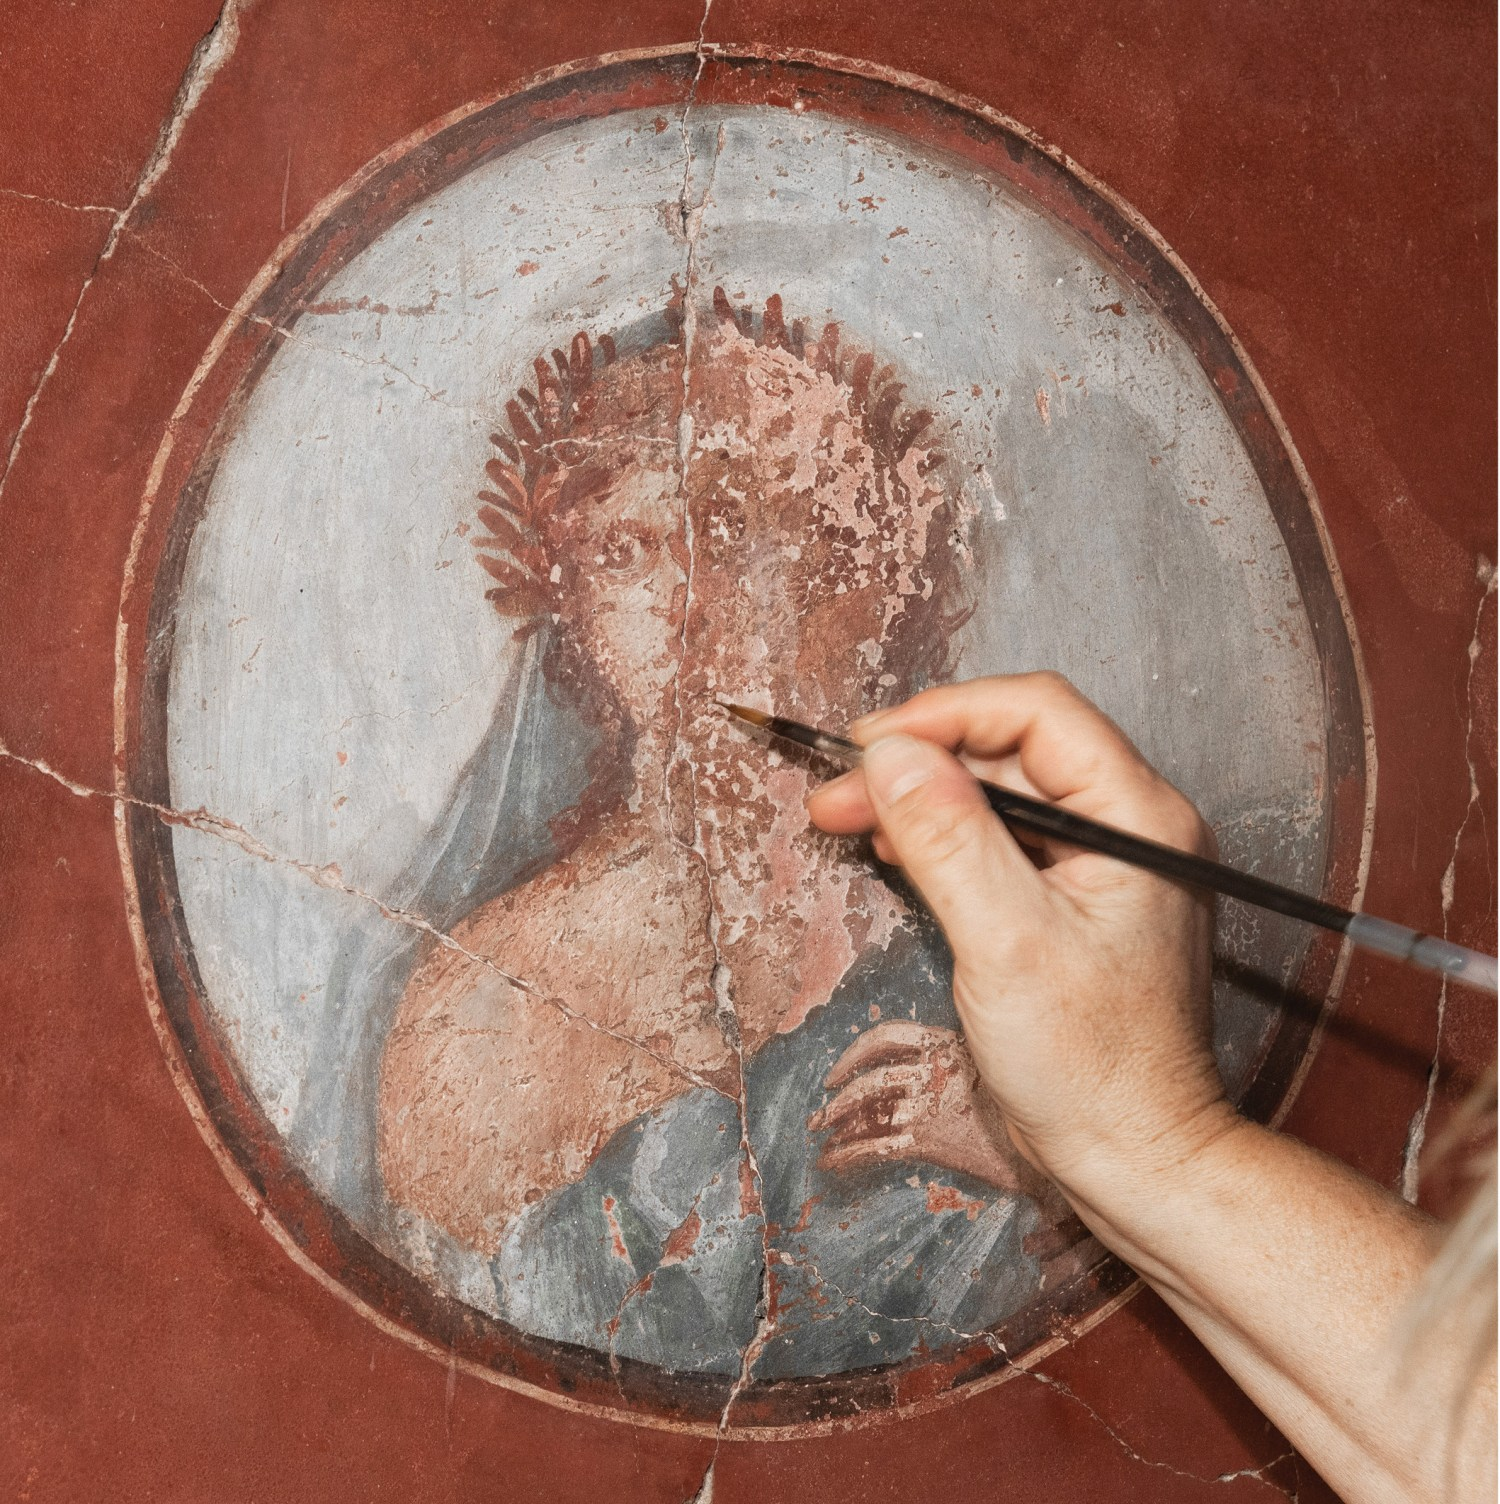 above Conservators carried out minimal in-painting in neutral tones, limited to areas of damage and loss. This approach allows visitors to appreciate the artistic quality of the paintings, while retaining archaeological information, and respecting the approach taken in 1938 to exhibit the wall-paintings as recomposed fragments.